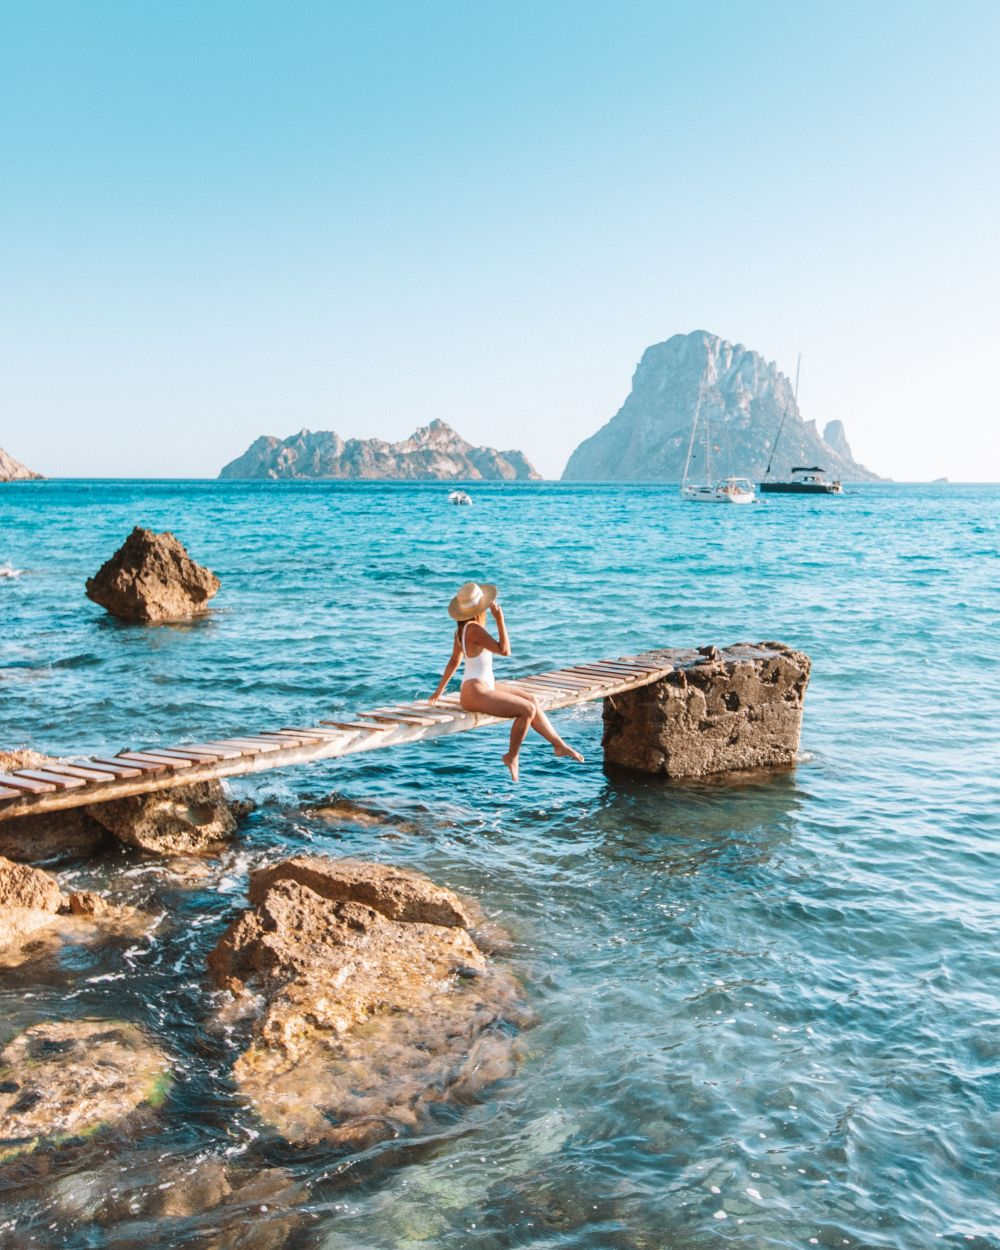 3 Days in Ibiza: How to spend the best weekend ever!